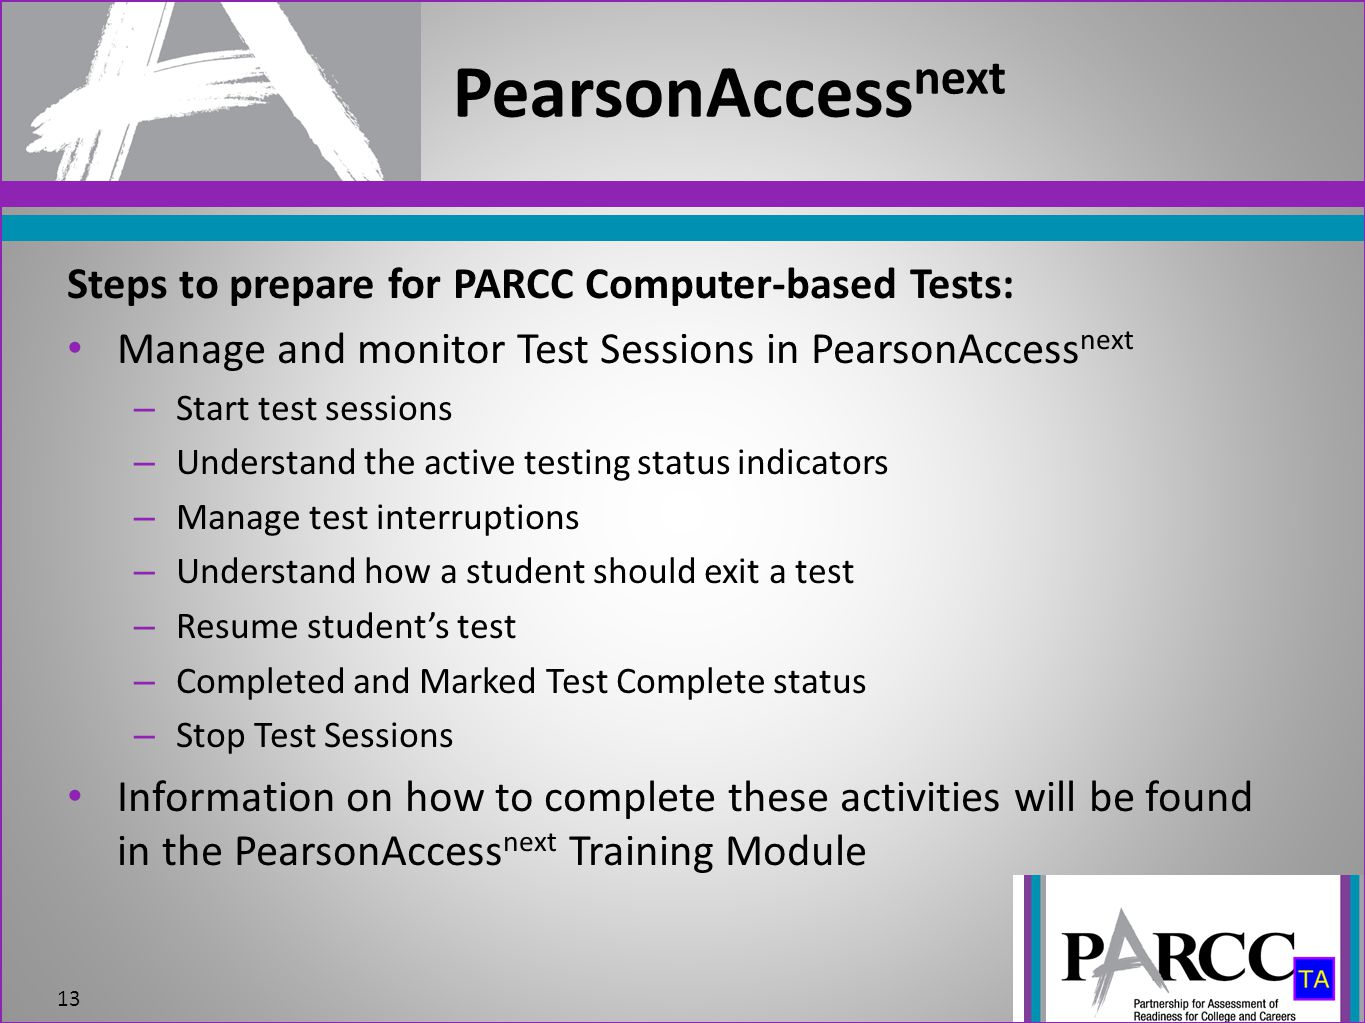 PearsonAccessnext Steps to prepare for PARCC Computer-based Tests: